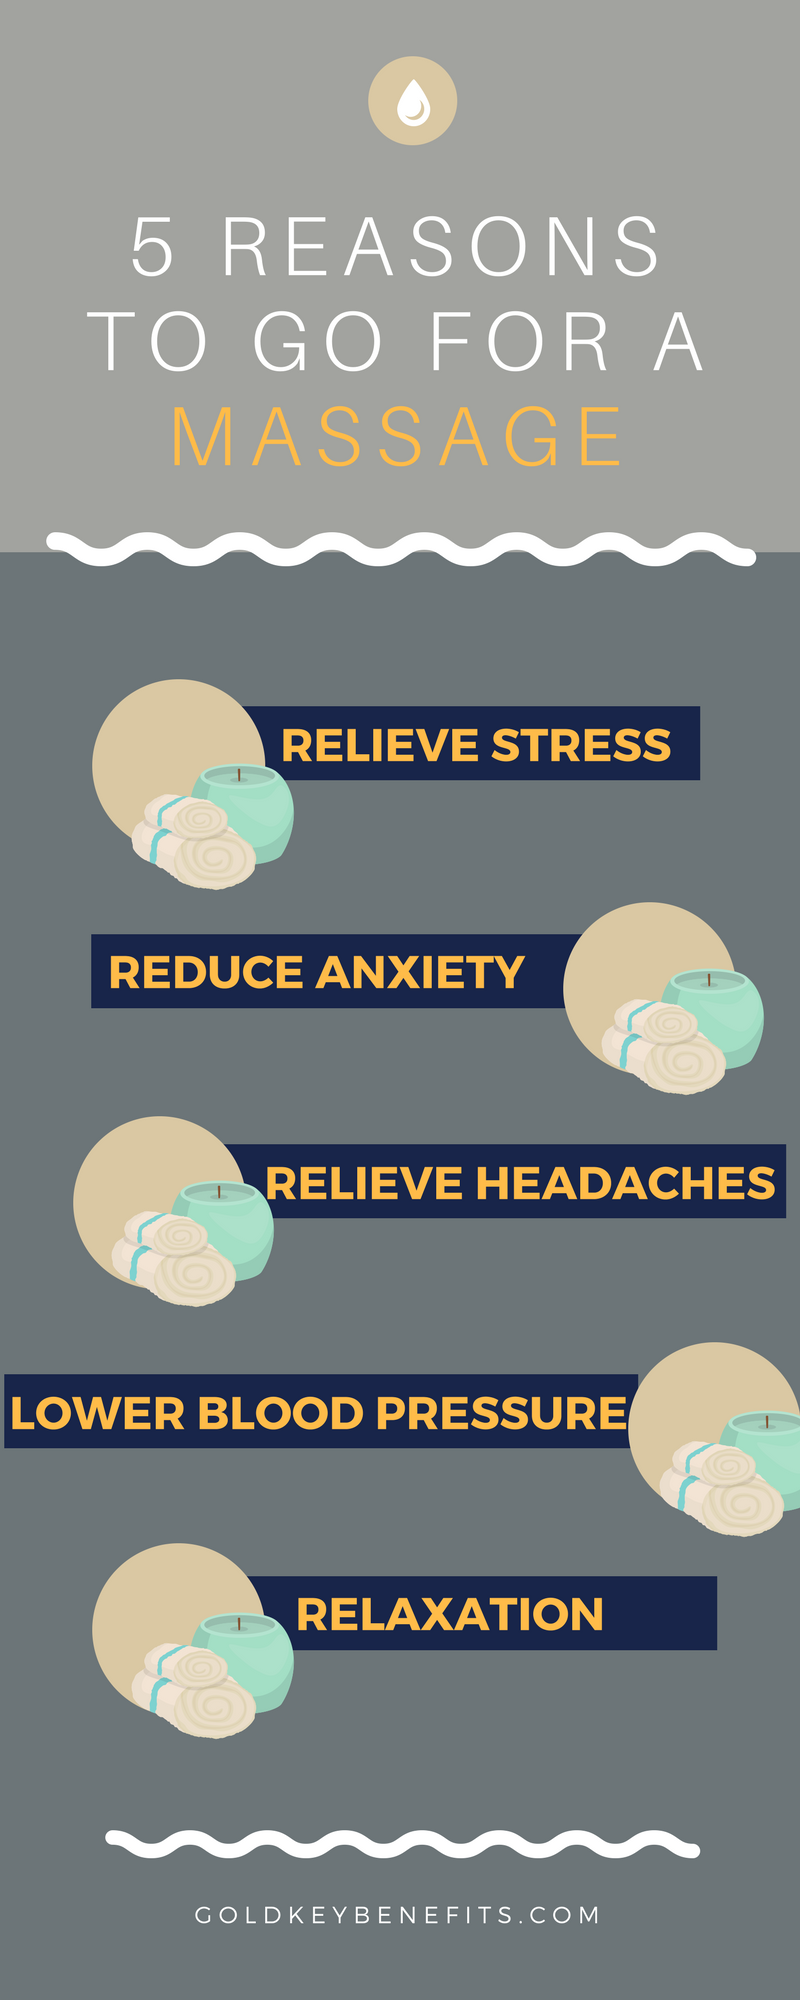 5 reasons to go for a massage